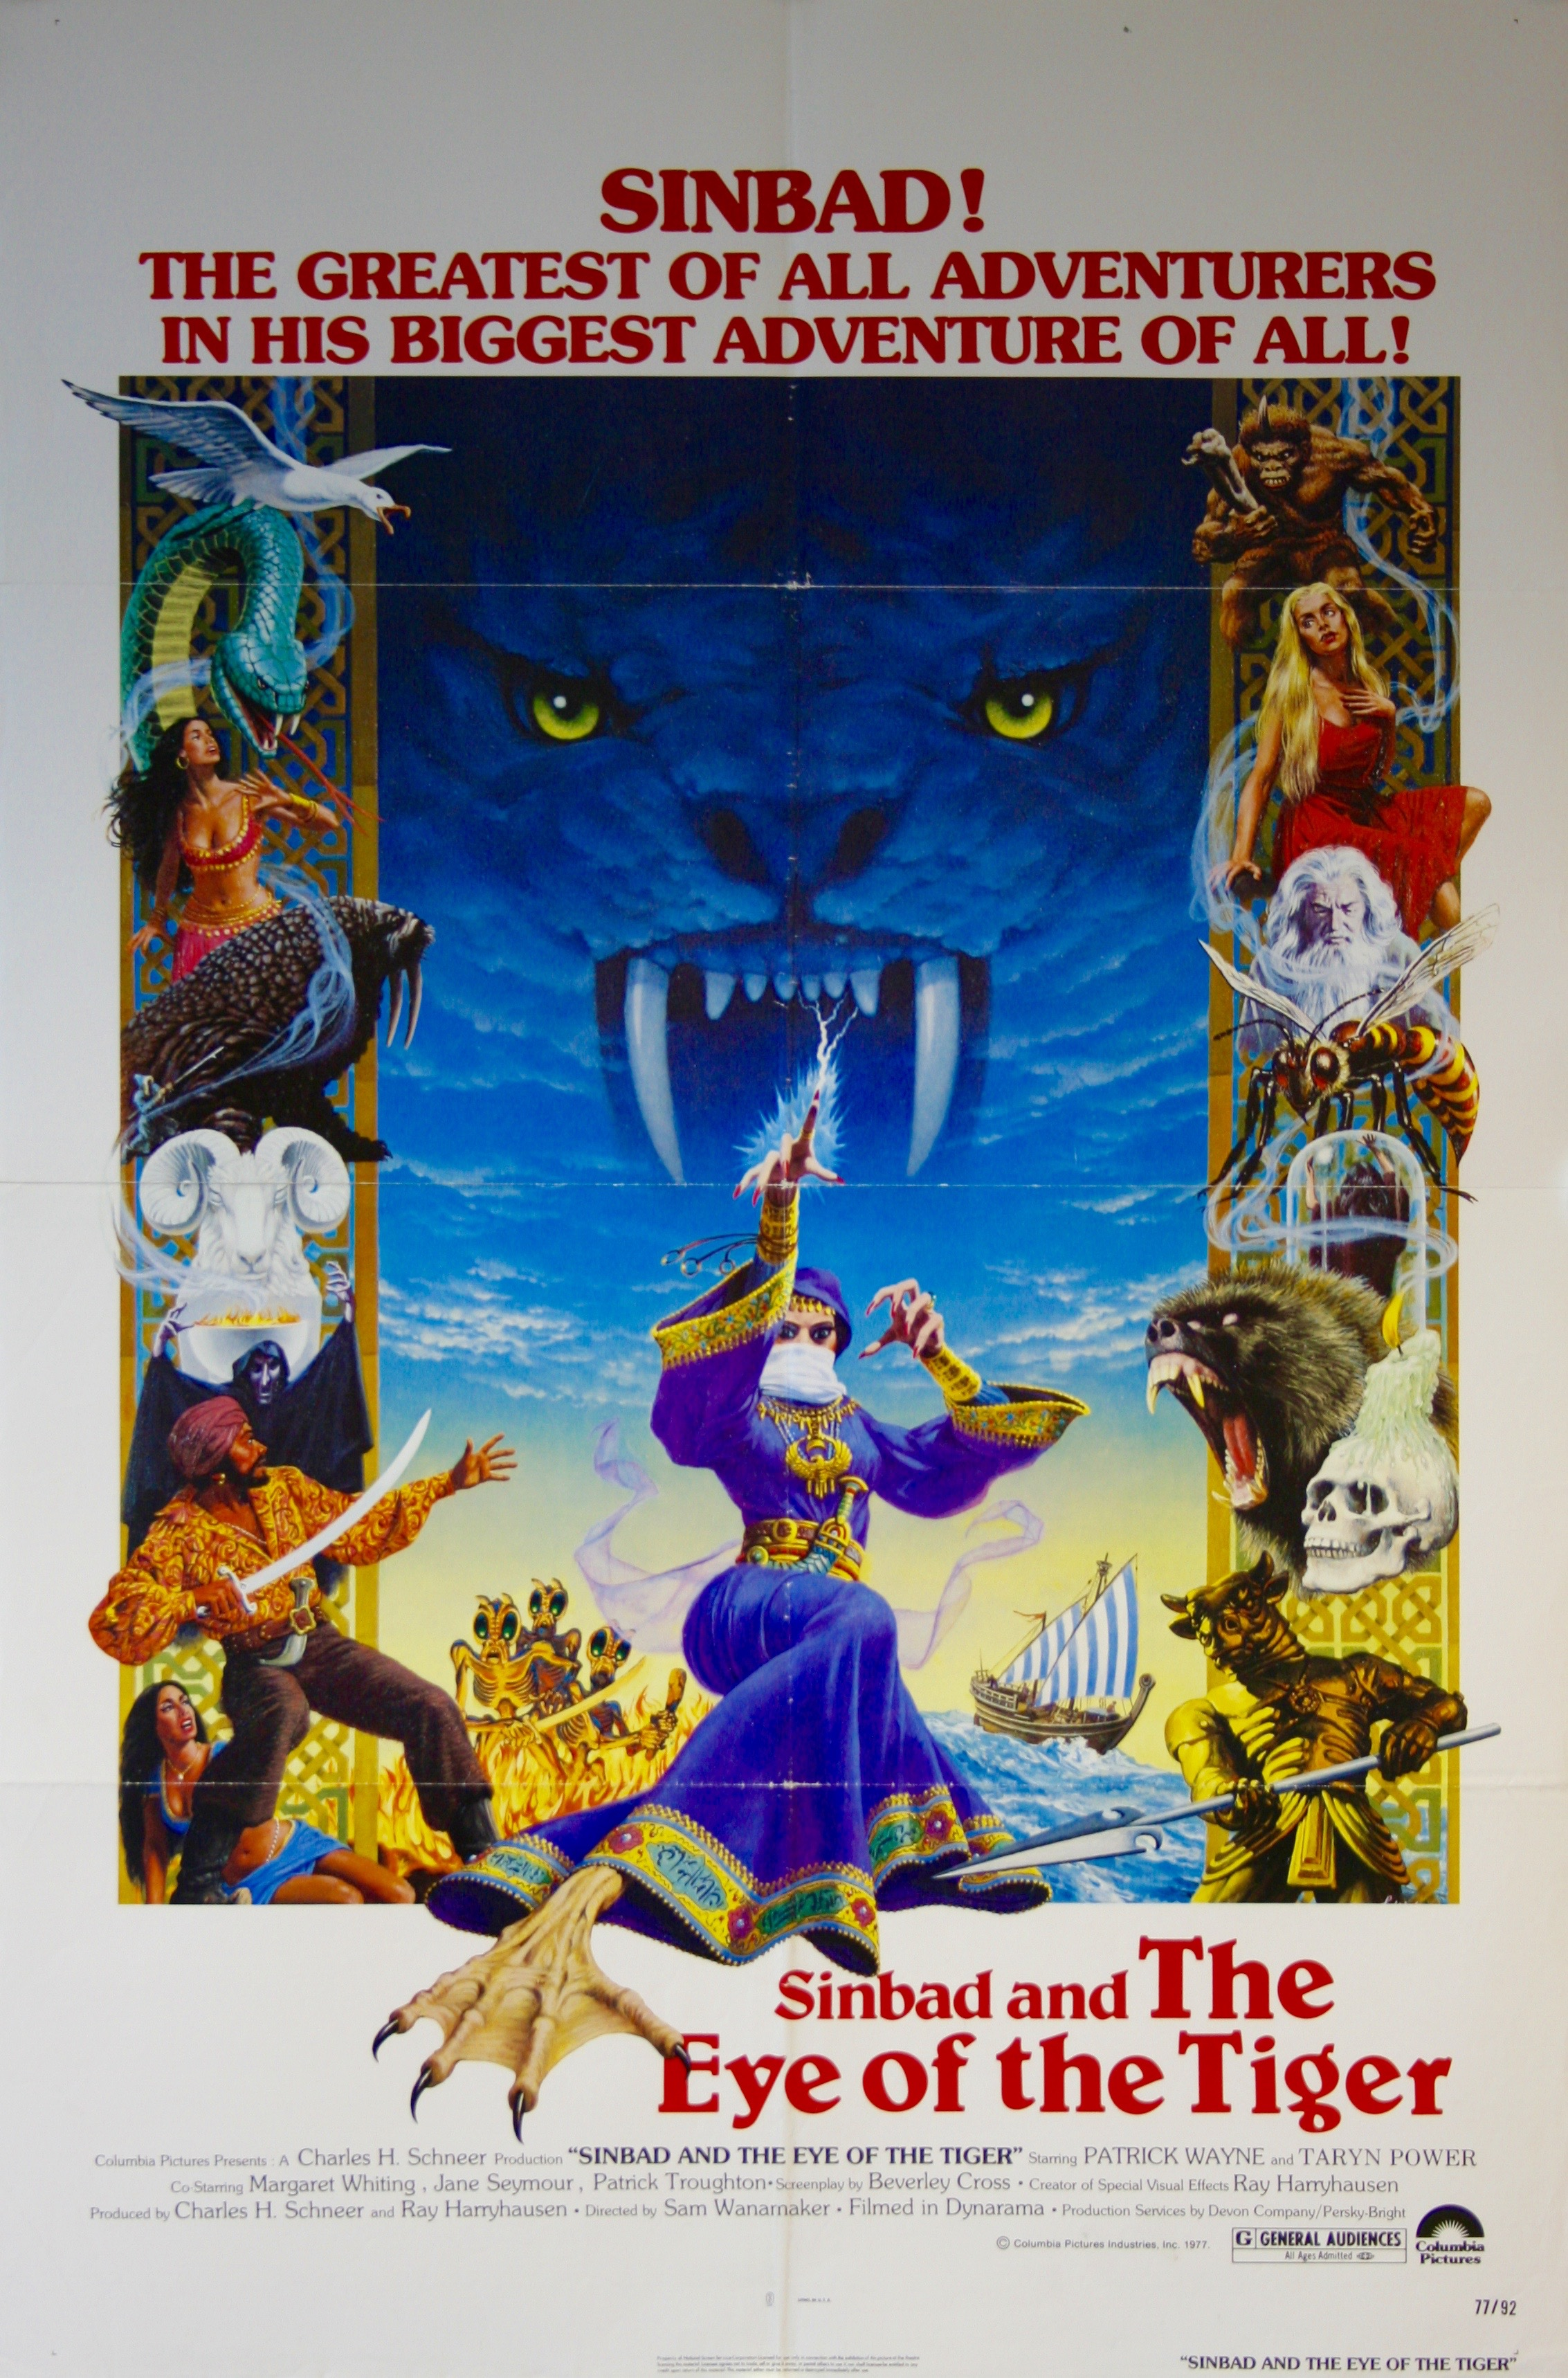 Sinbad and the Eye of the Tiger - Vintage Movie Posters